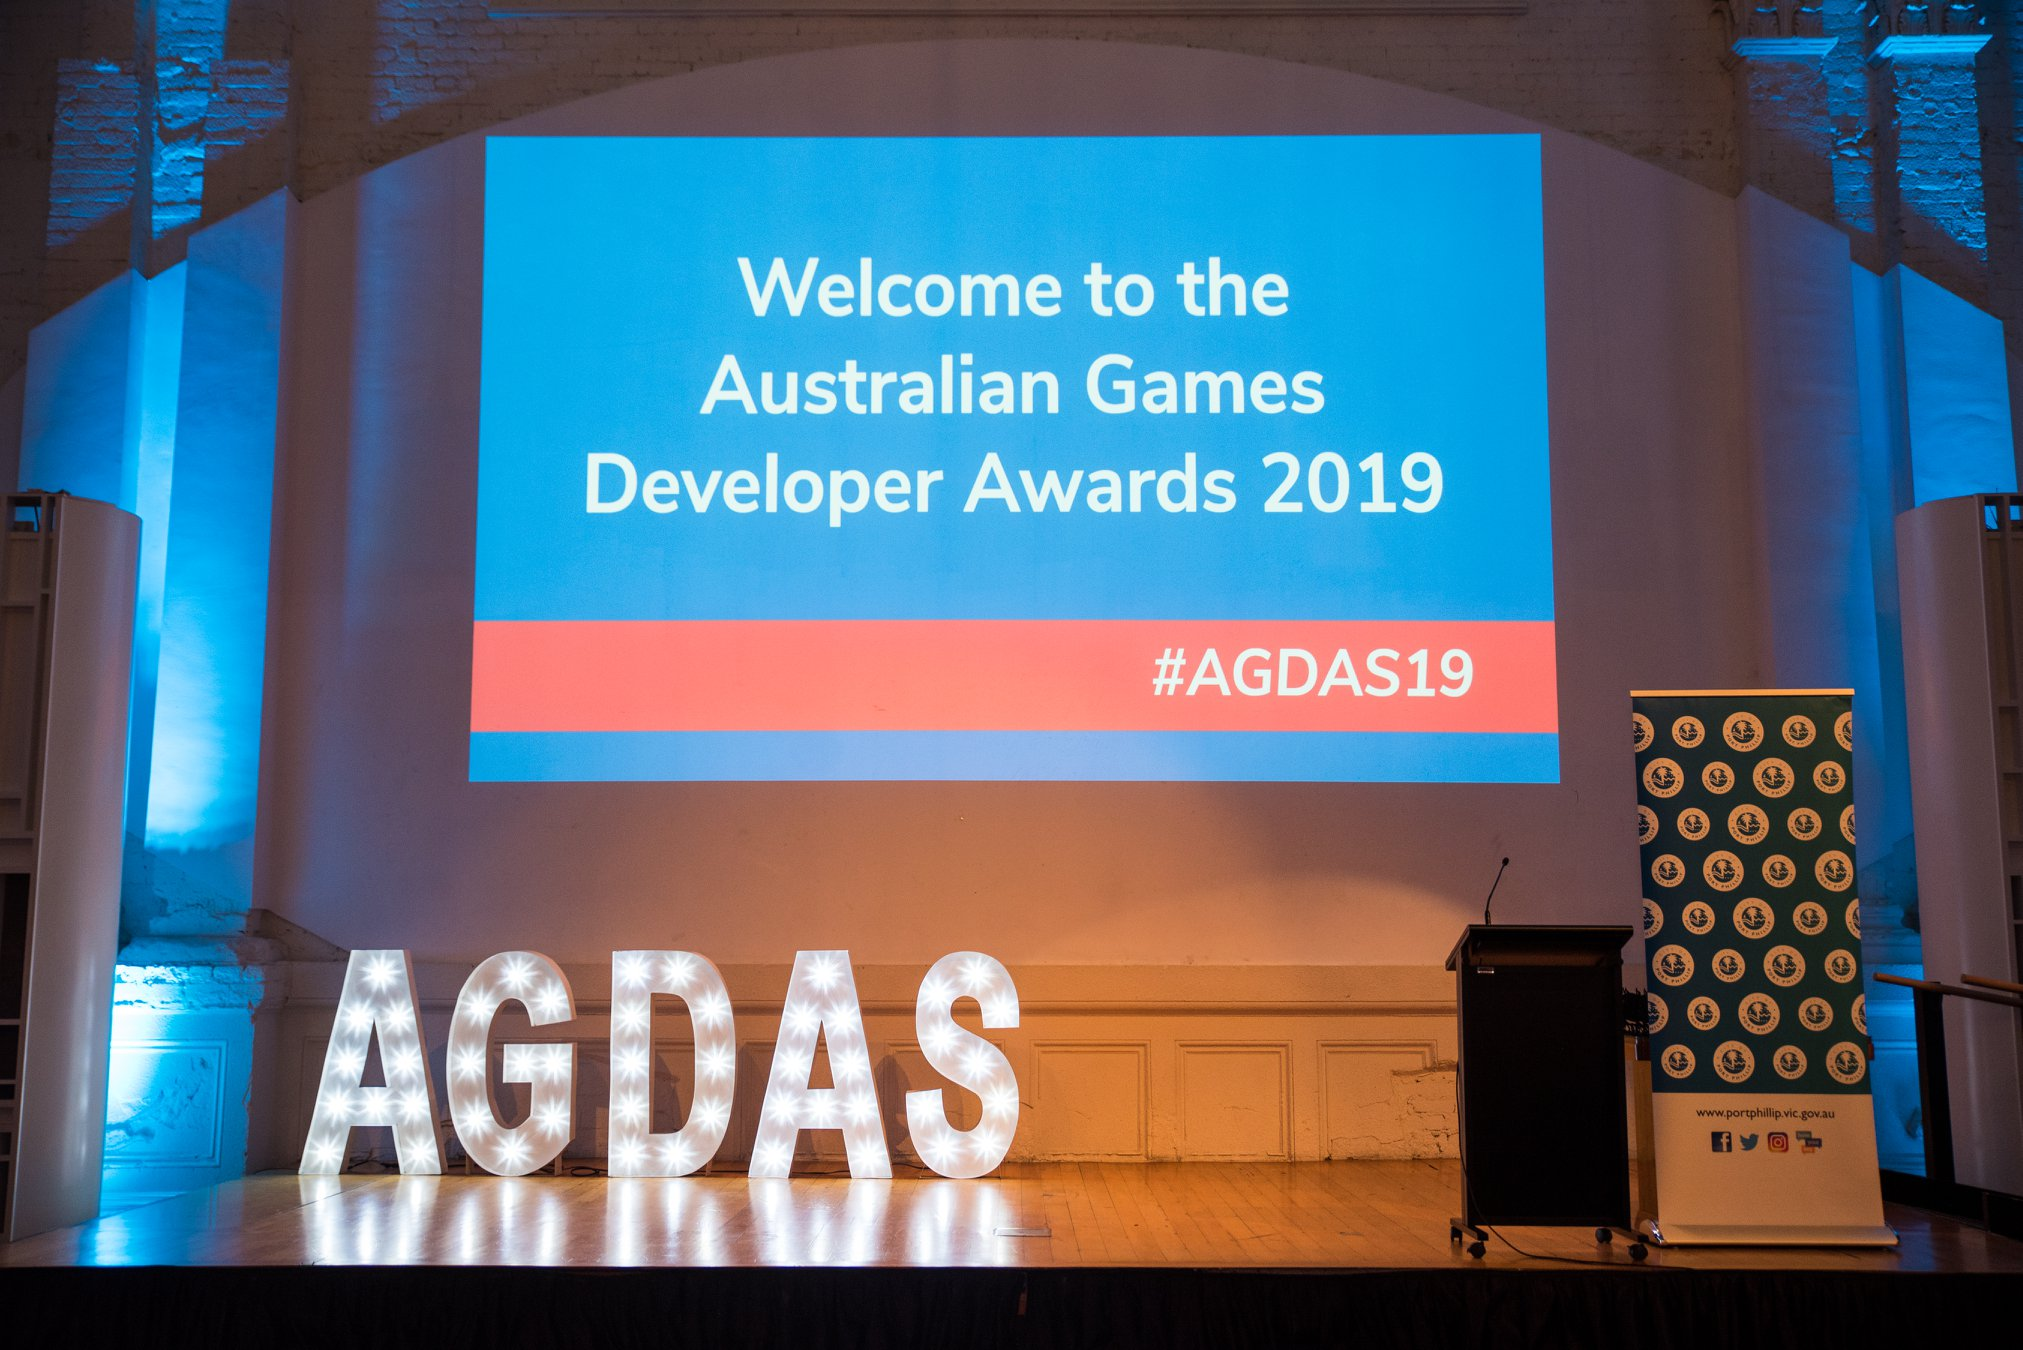 Australian Game Developer Awards 2019 (AGDAs) at GCAP during Melbourne International Games Week (MIGW), Chaos Theory wins Best Serious Game 2019 for their mobile arcade game Bleached Az - dedicated to promoting ocean health awareness and environmental conservation.